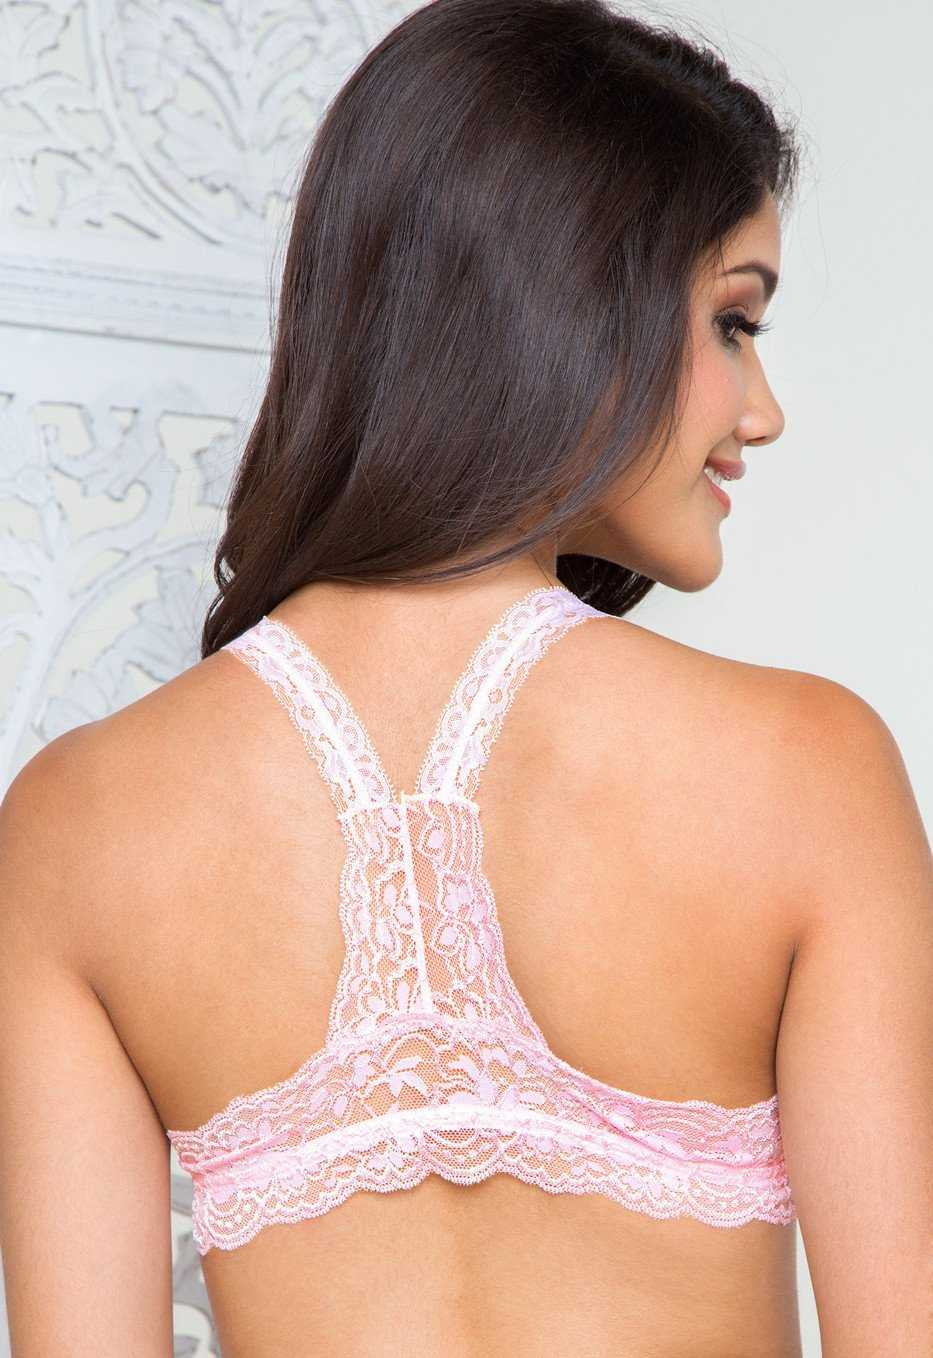 Intimates - Up All Night Lace Bralette - Pink